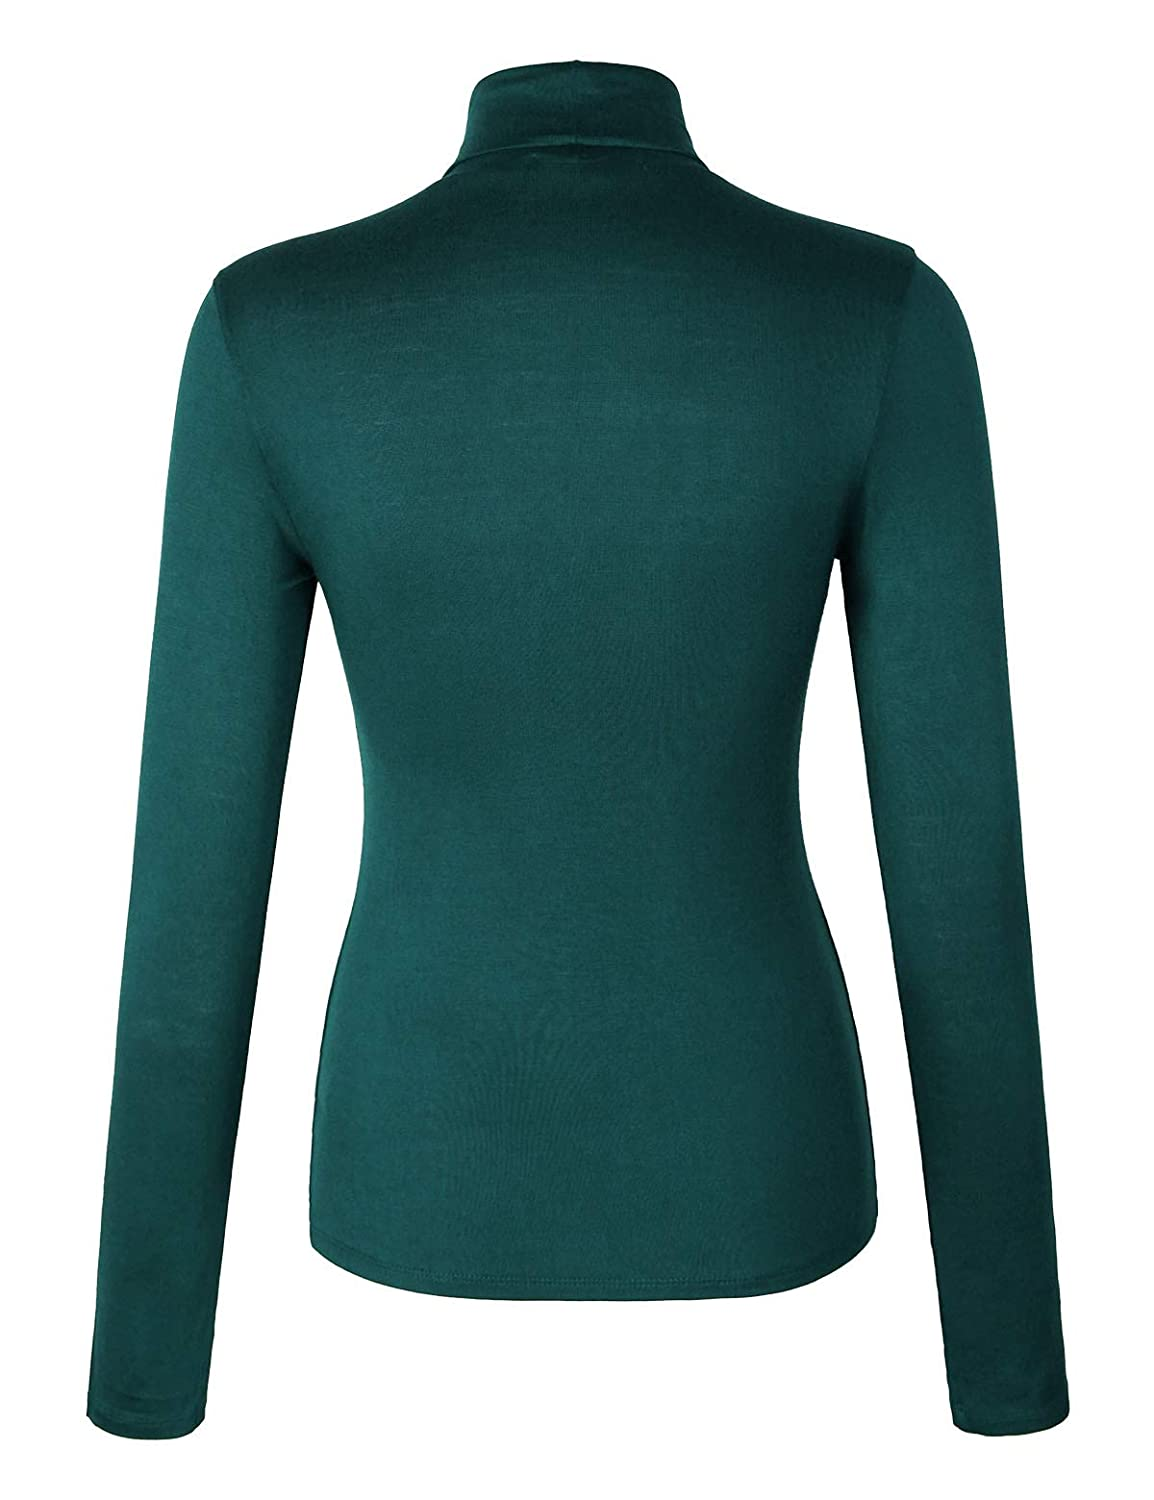 makeitmint Womens Basic Casual Soft Thin Turtle Neck Long Sleeve Knit Top YIL0023-TEAL-LRG